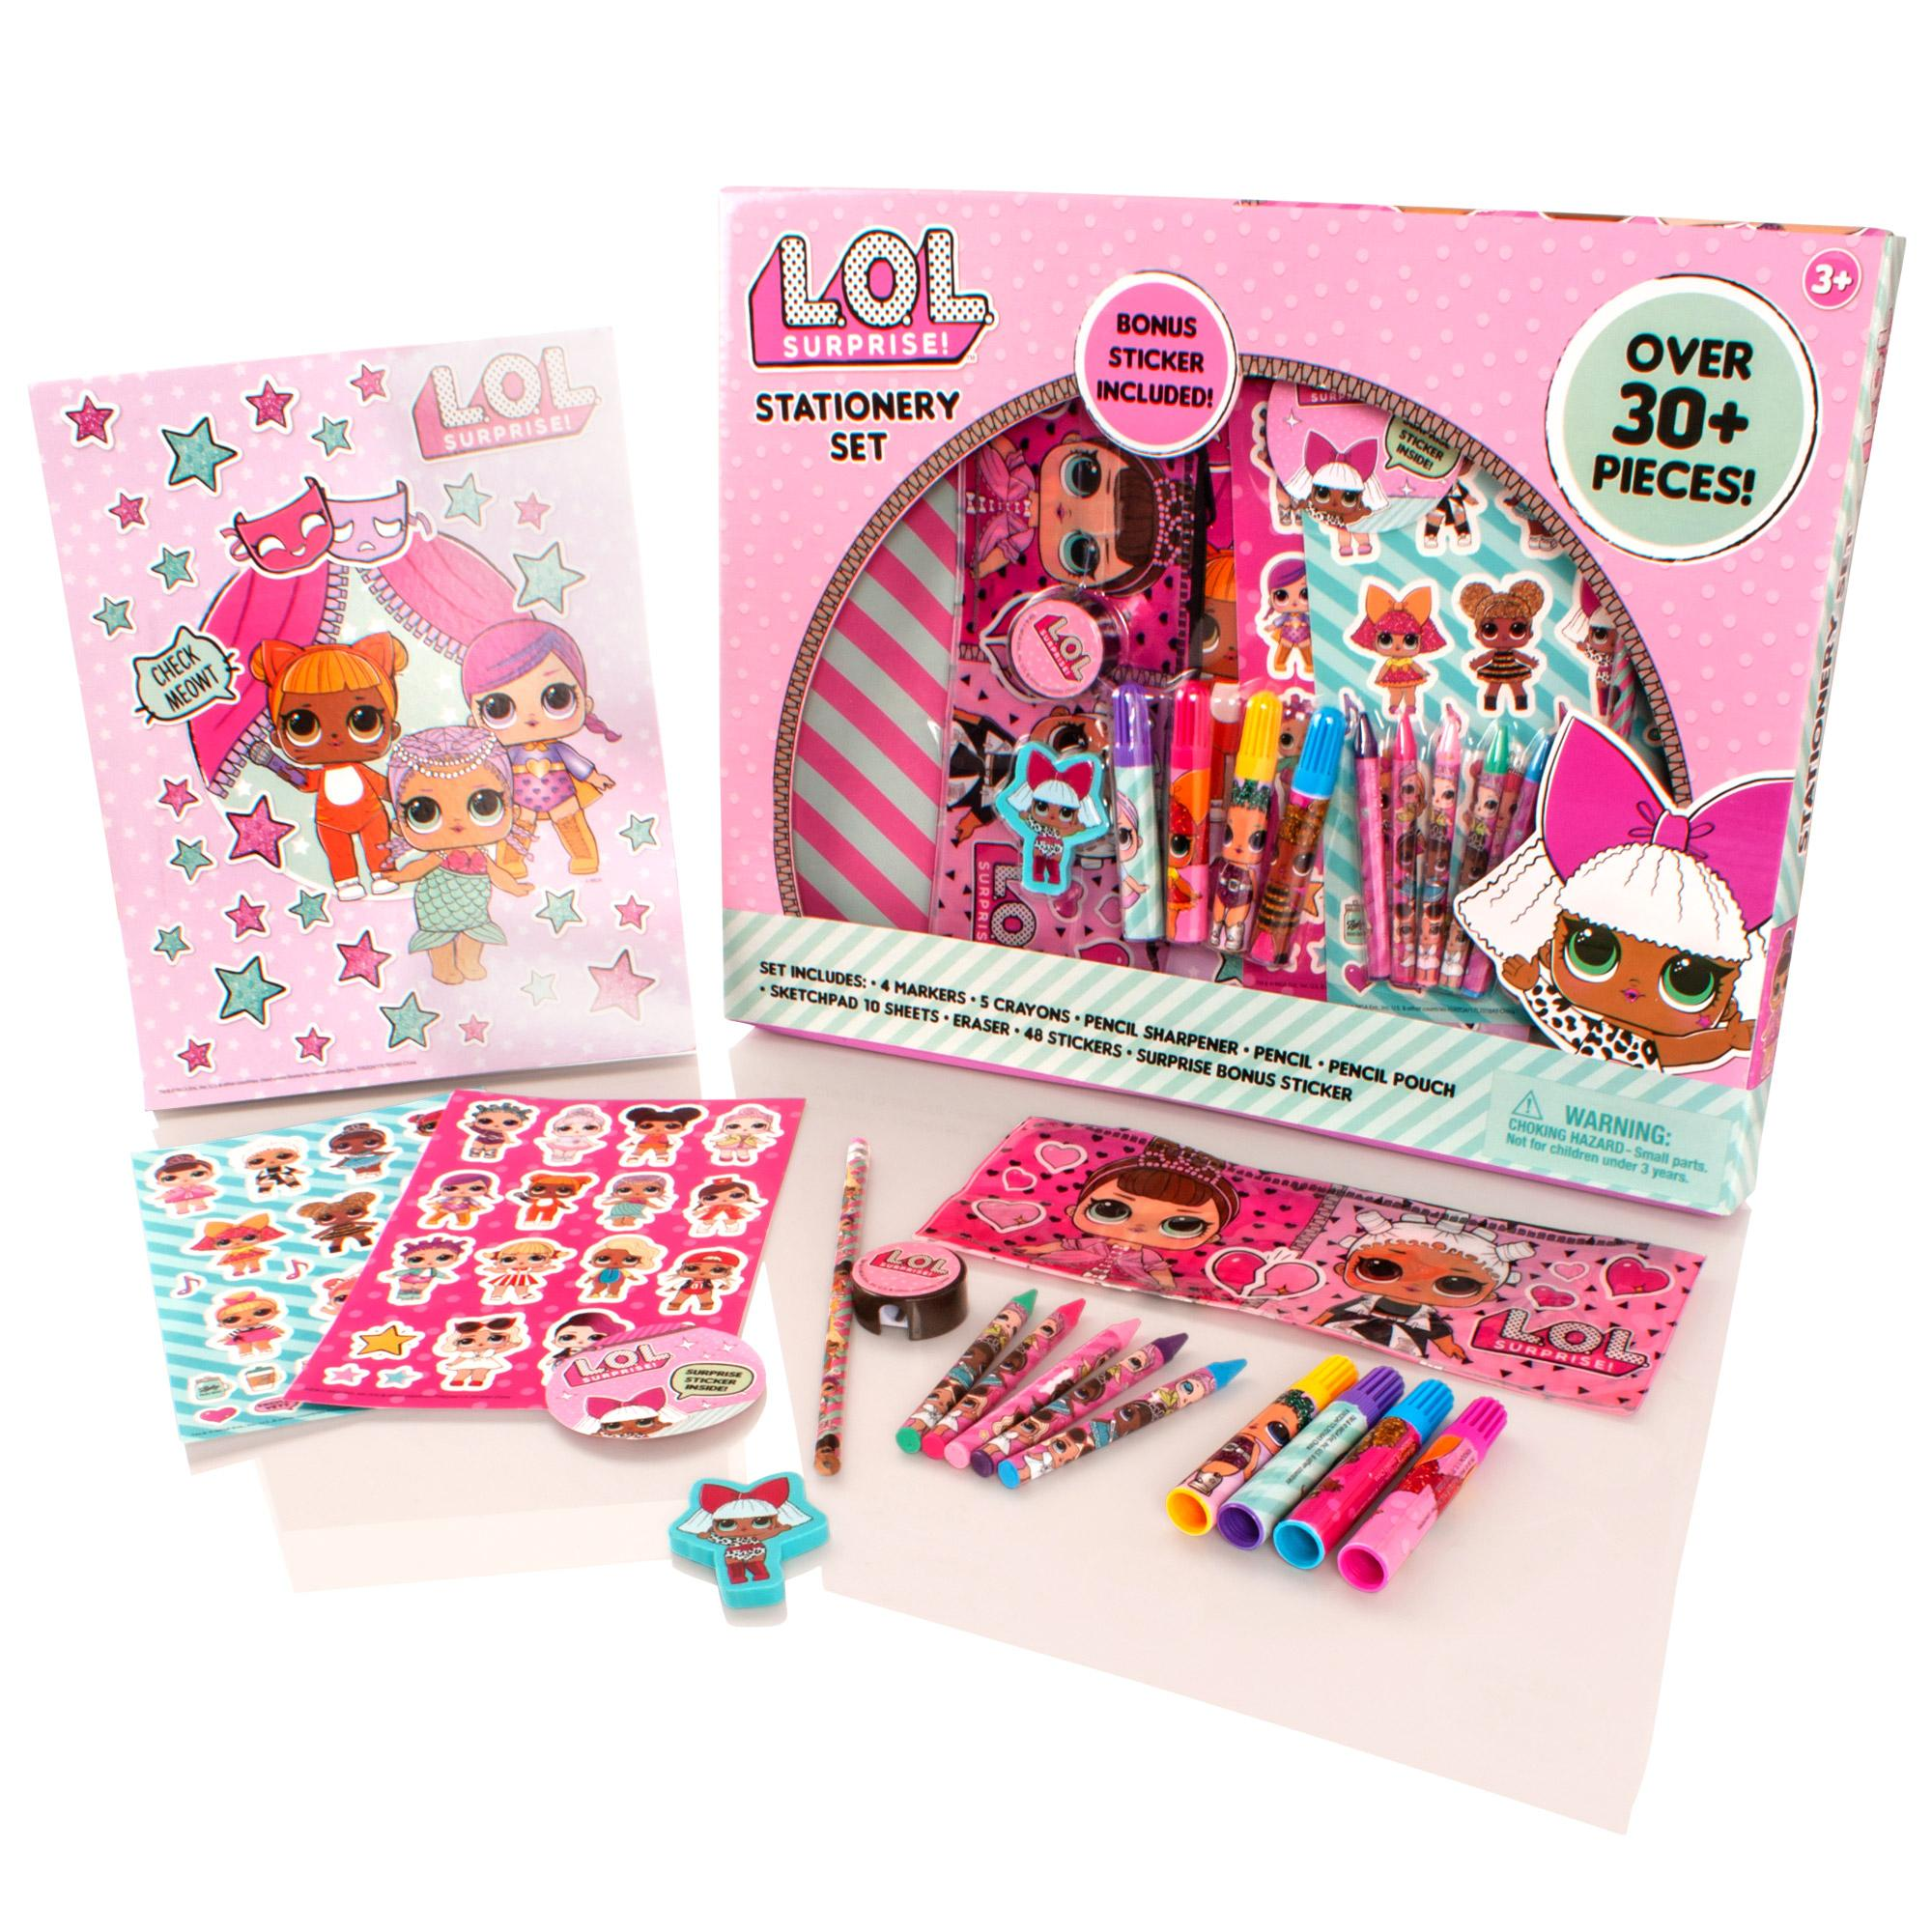 Pieces LOL SURPRISE STATIONARY SET Over 30 Bonus sticker included!